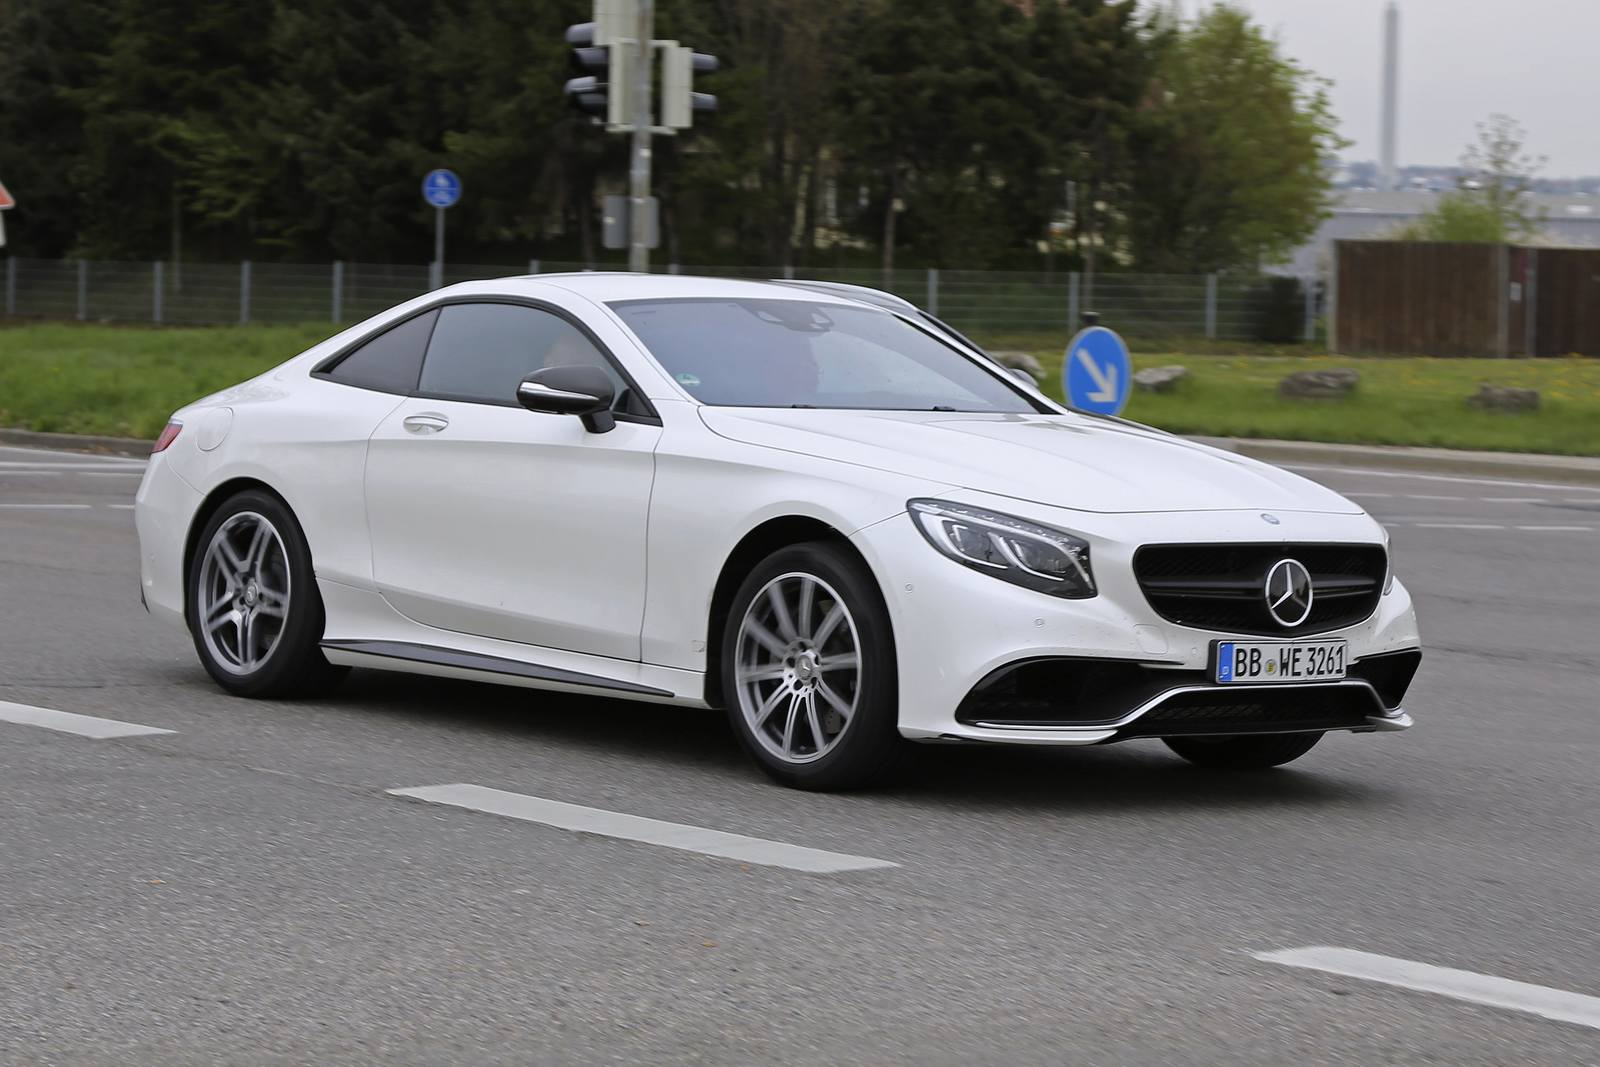 2018 Mercedes Benz E Class Coupe Test Mule Spy Shots